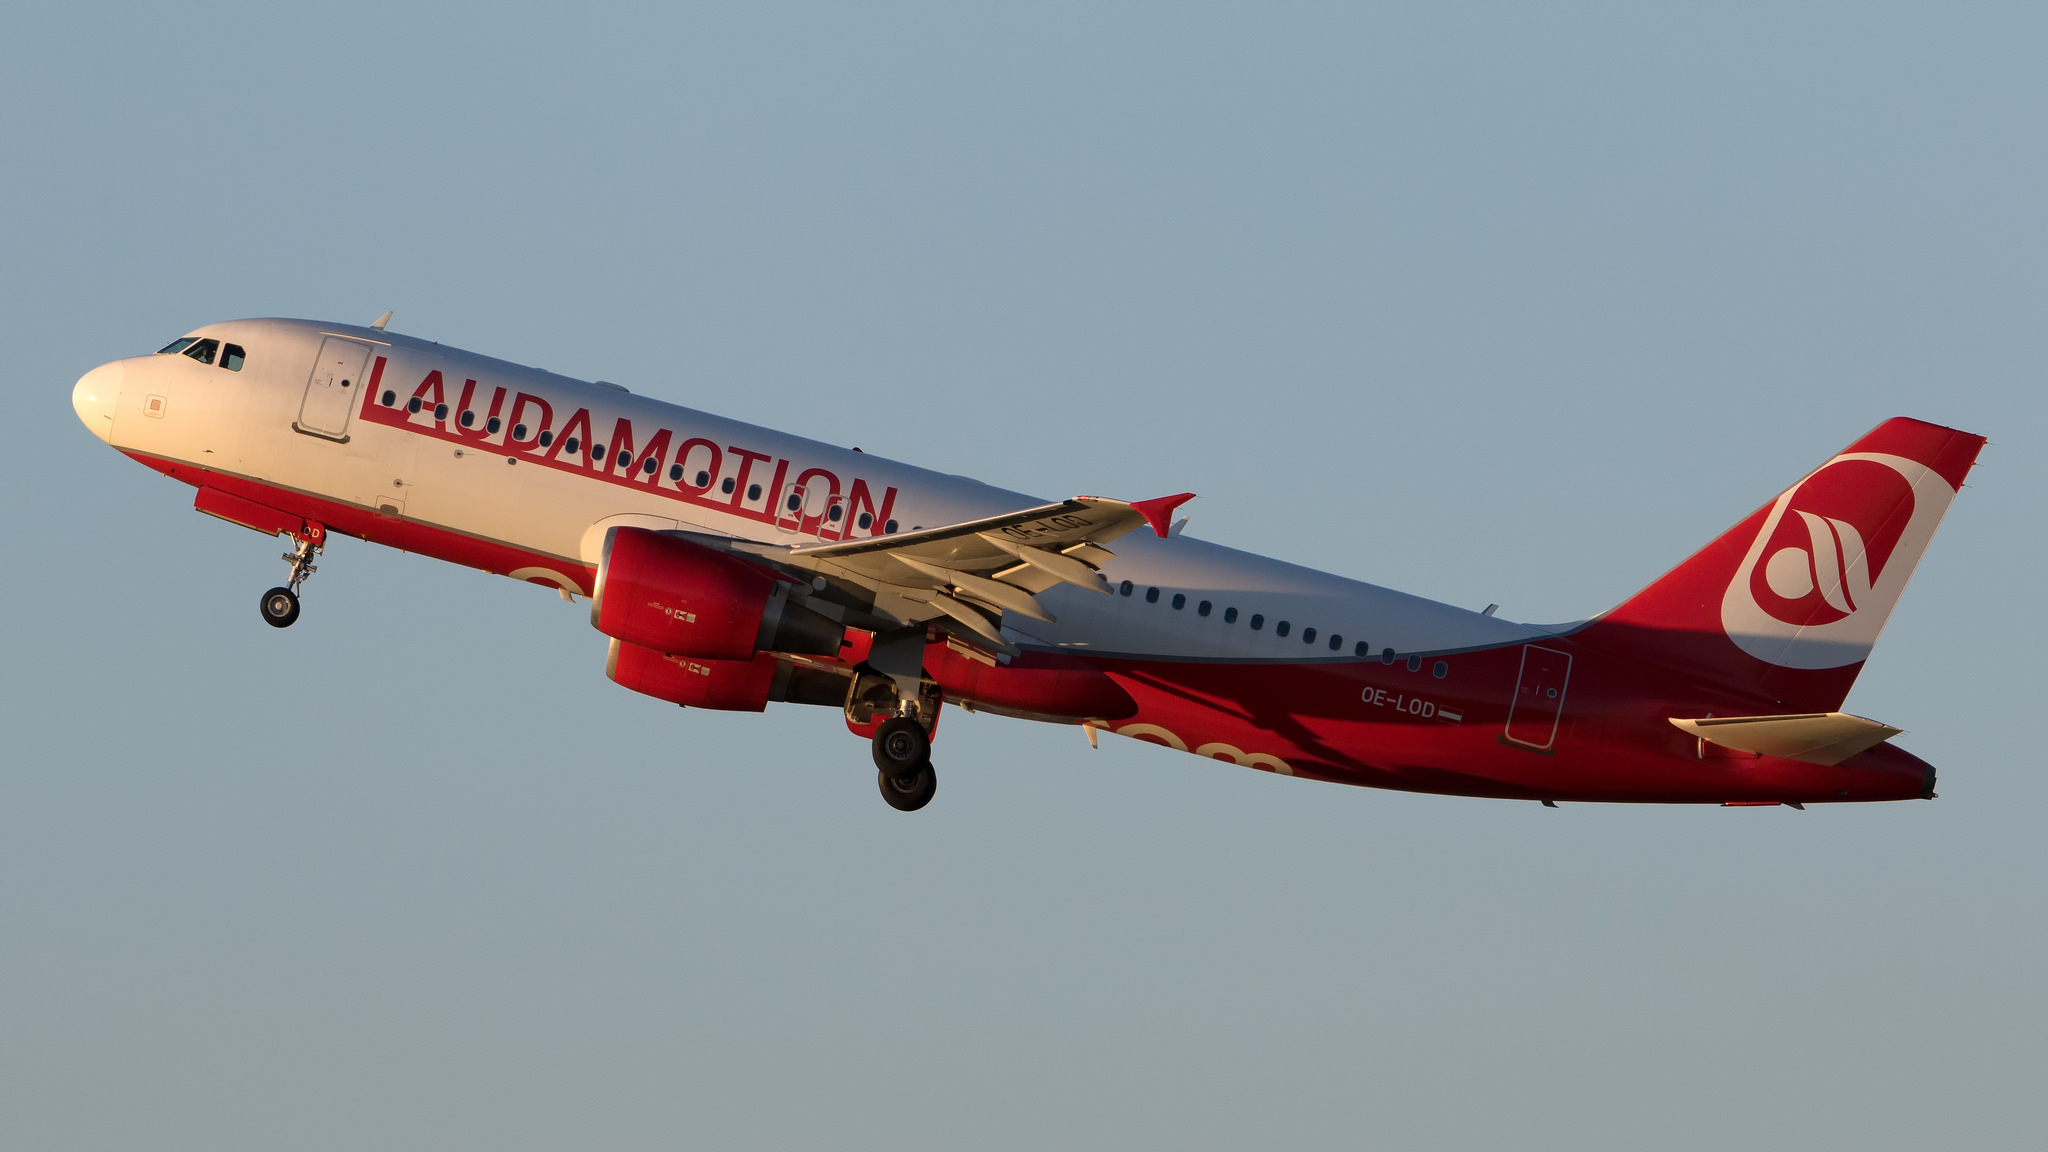 Laudamotion Airbus A320 OE-LOD